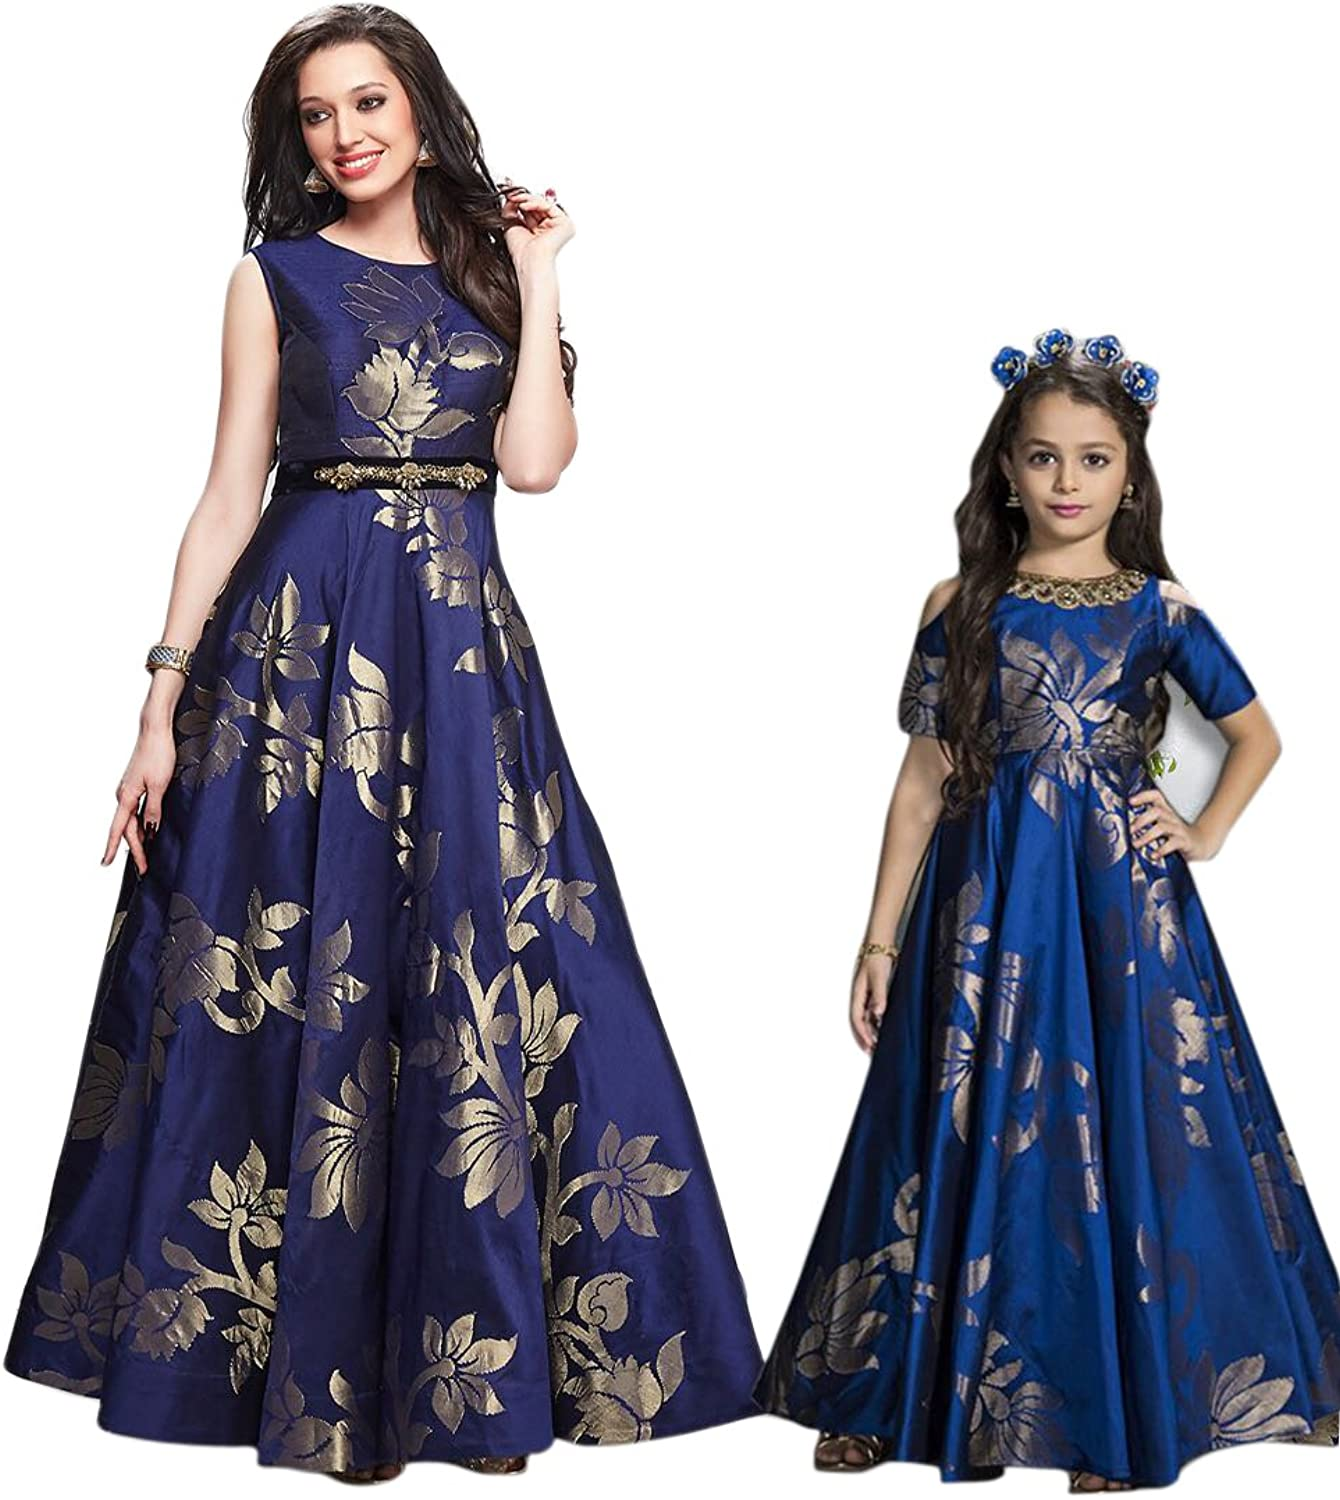 Mannequin Mother Daughter Clothes Dress Family Look Gown Casual Summer Solid bluee